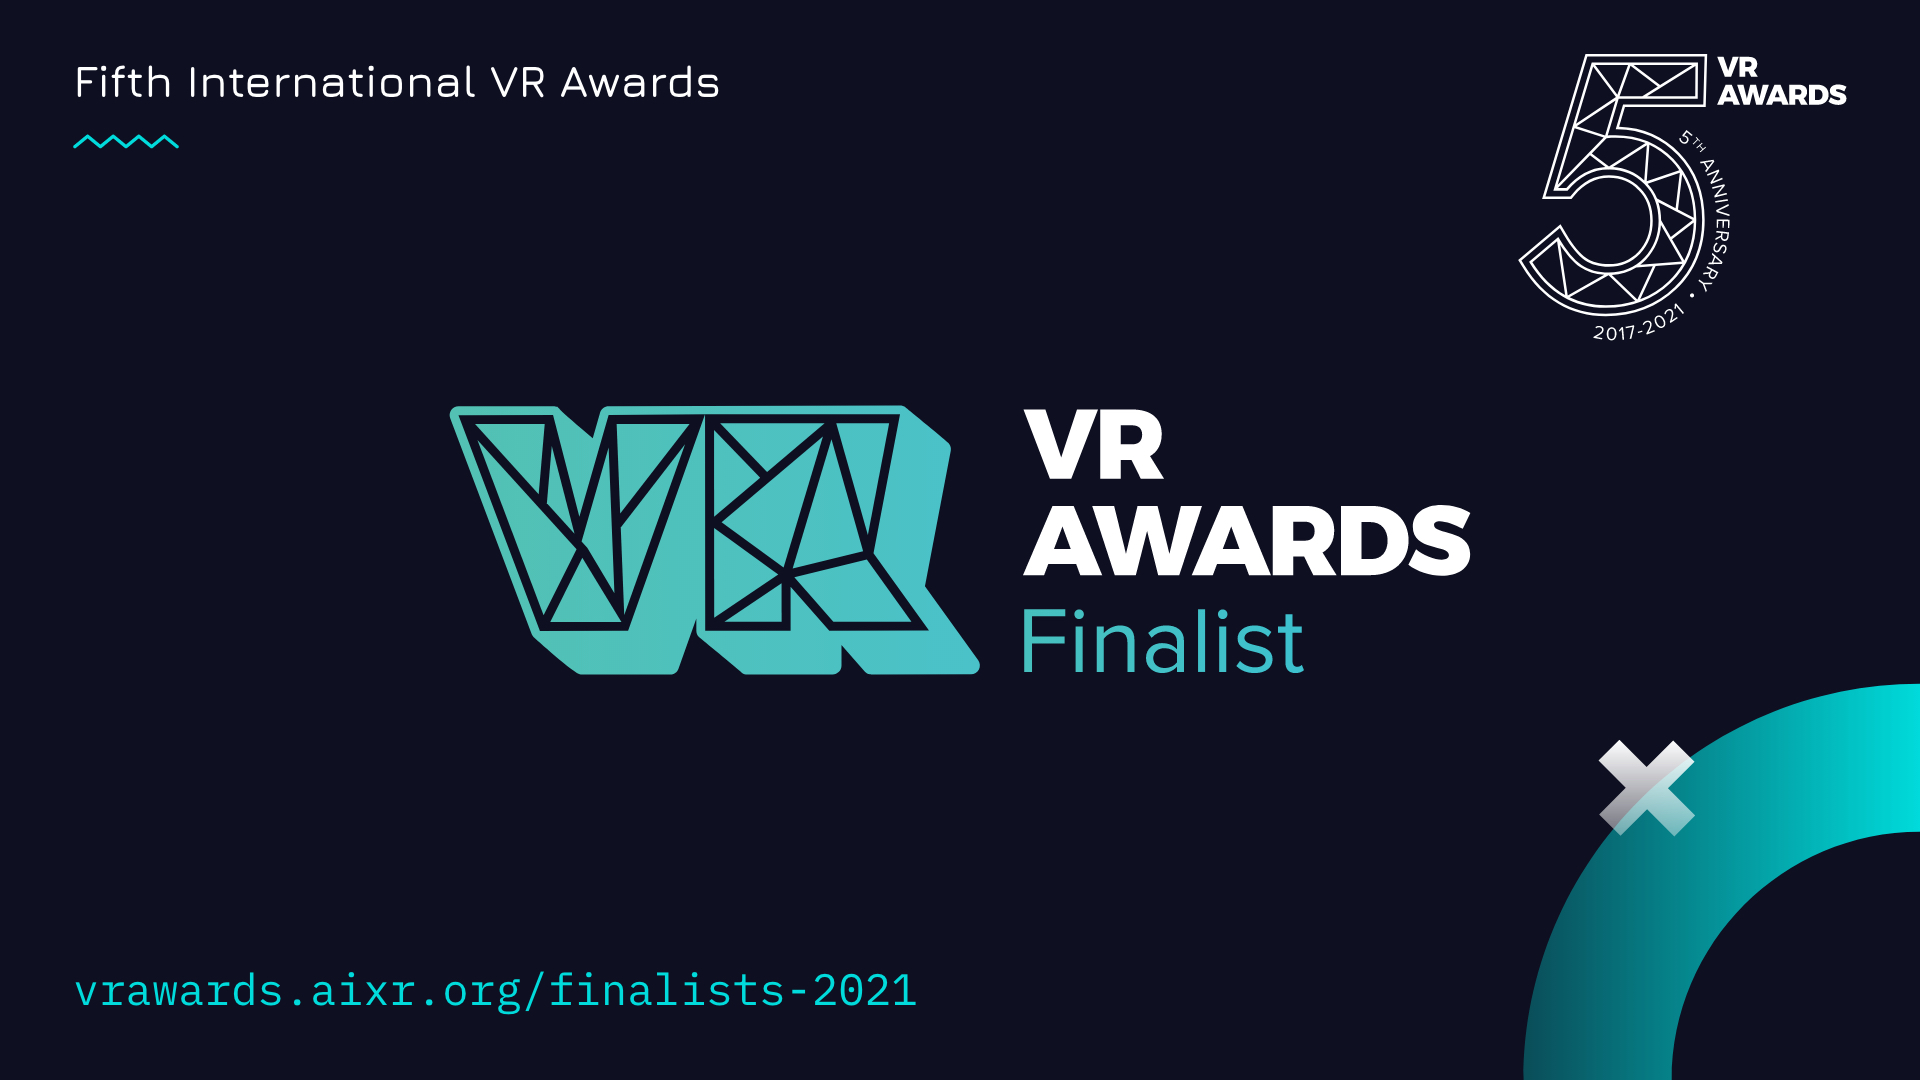 VR Awards Enterprise Solution of the Year Finalist